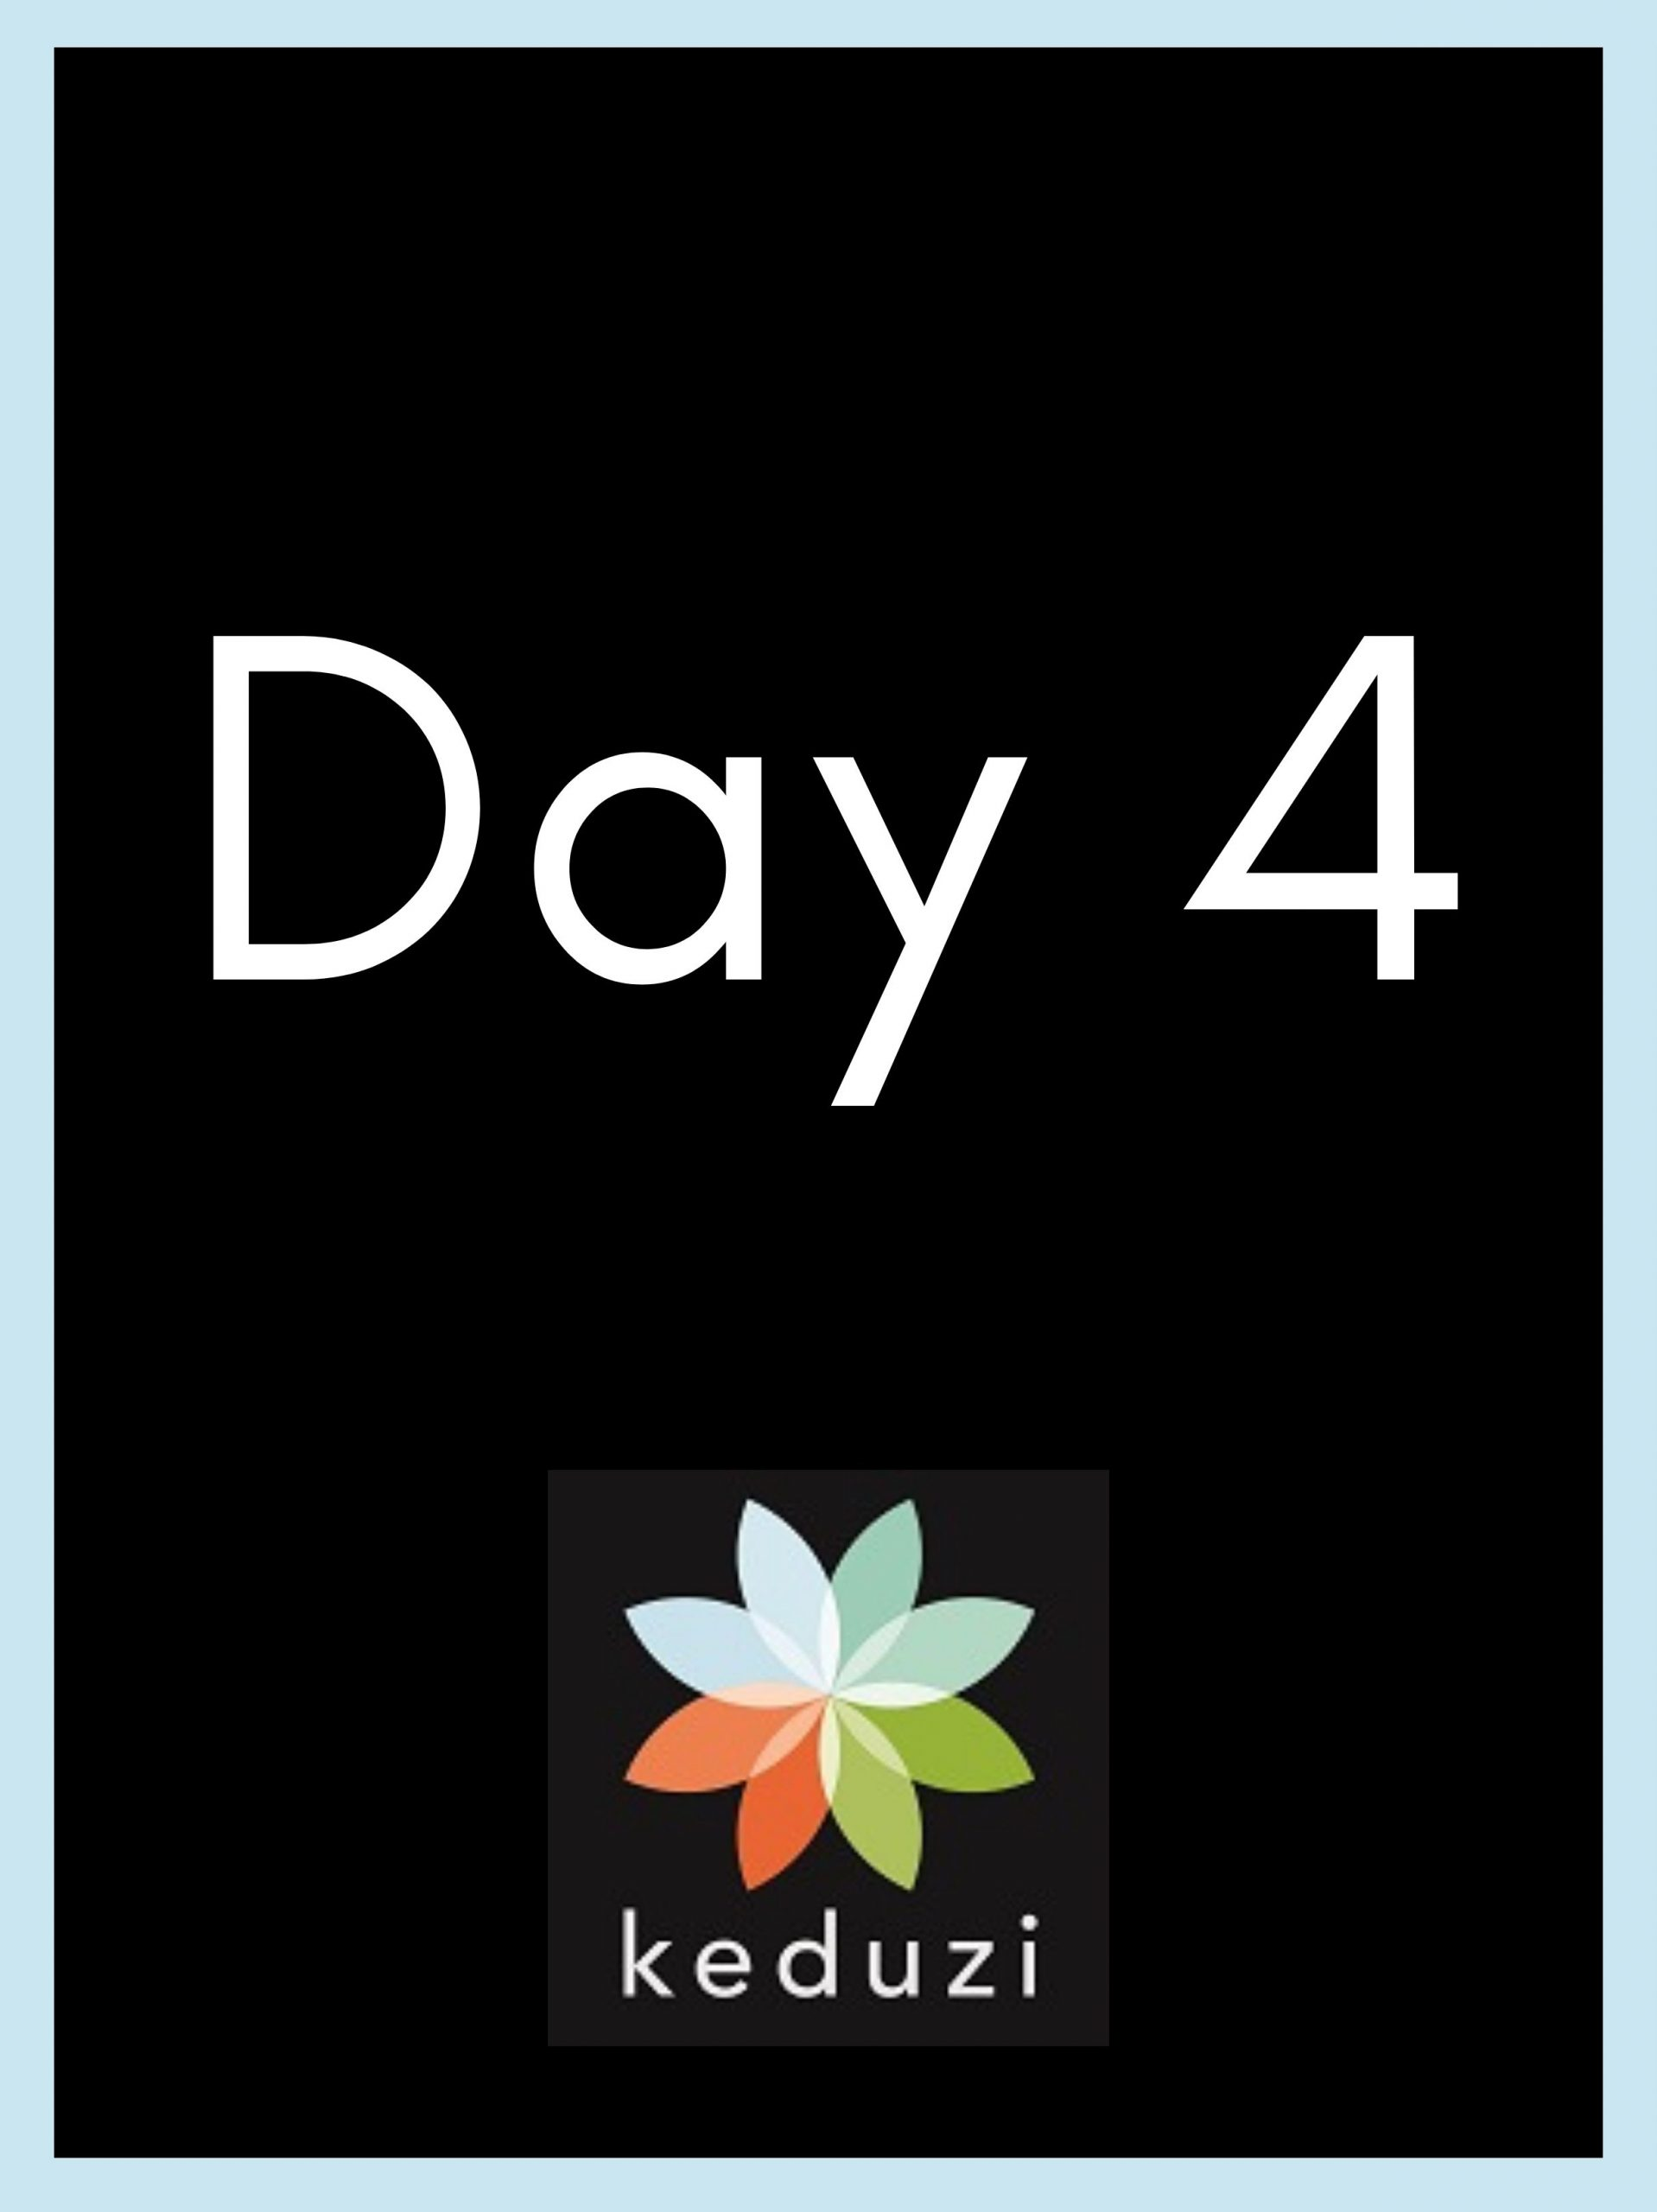 The words Day 4 and the Keduzi logo, which is a colourful flower.